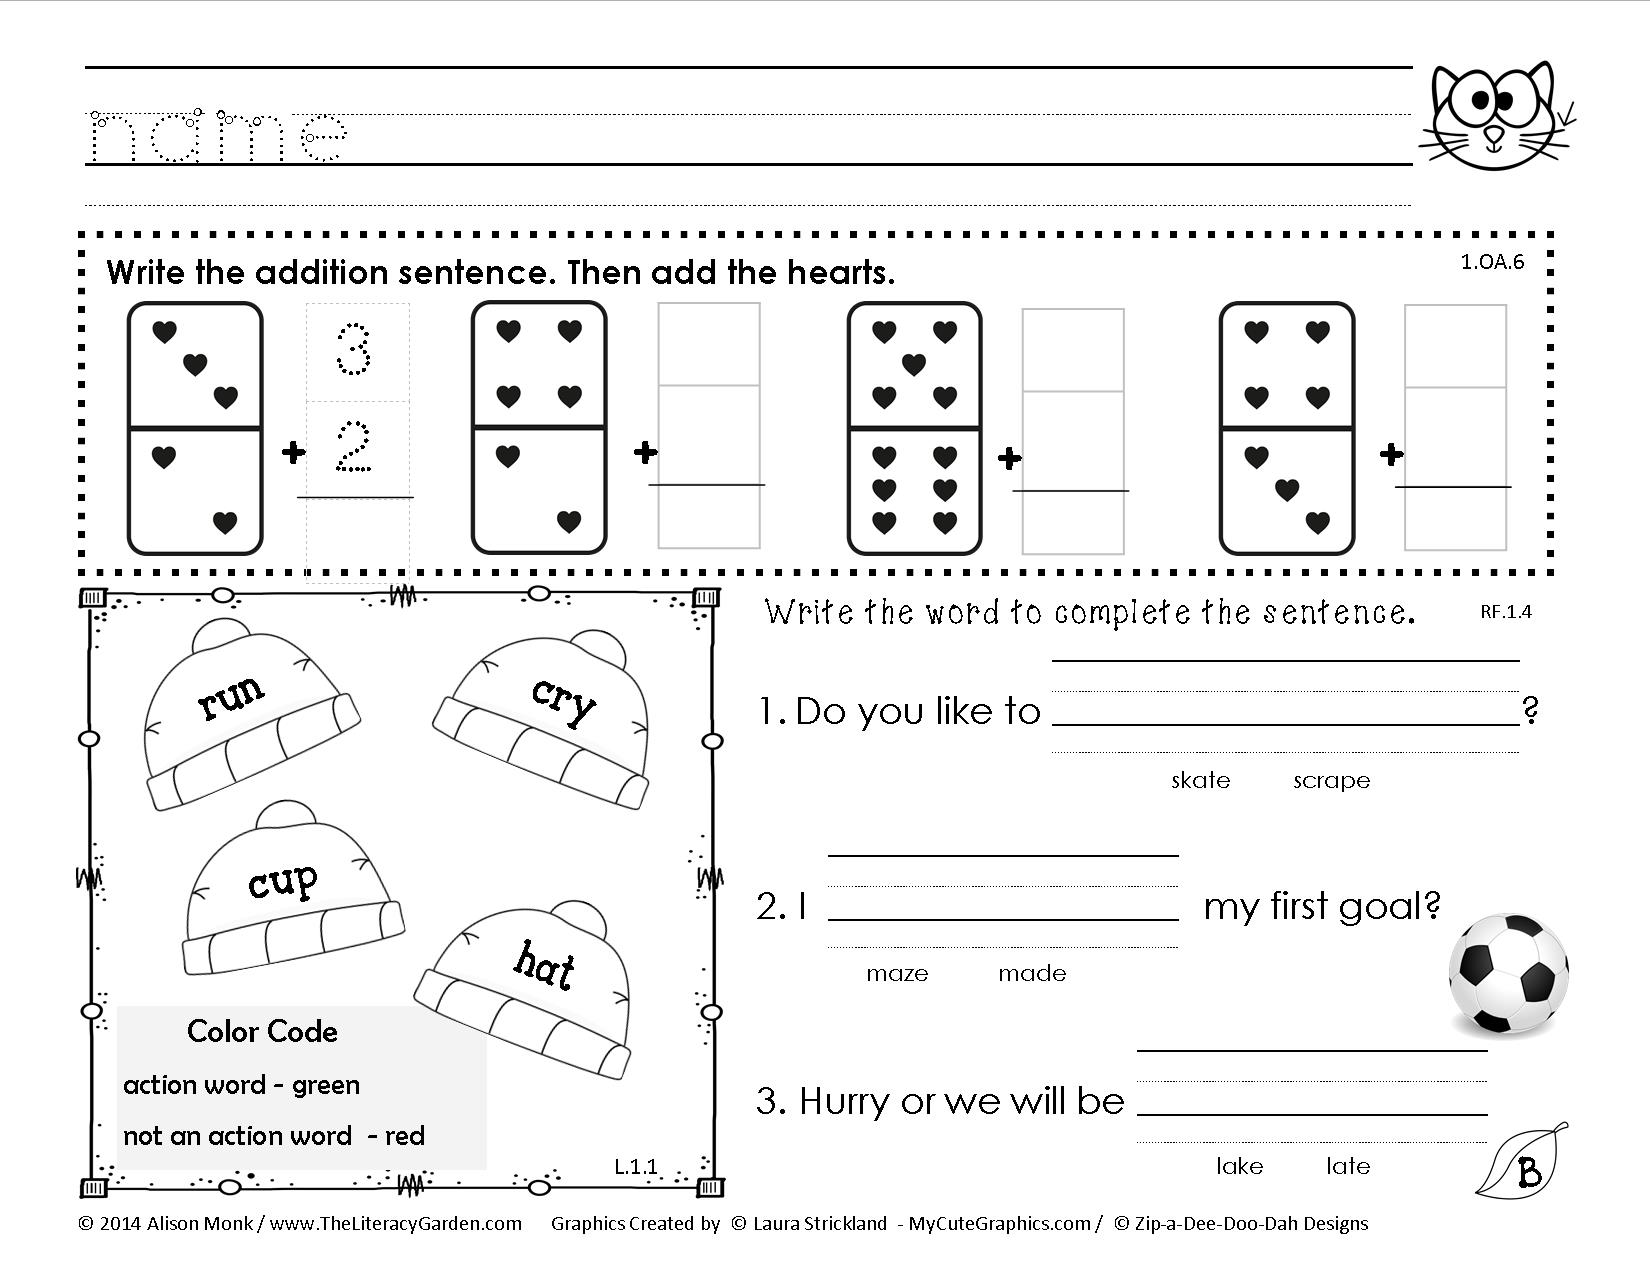 Worksheet Works For 1st Grade : Common core morning work